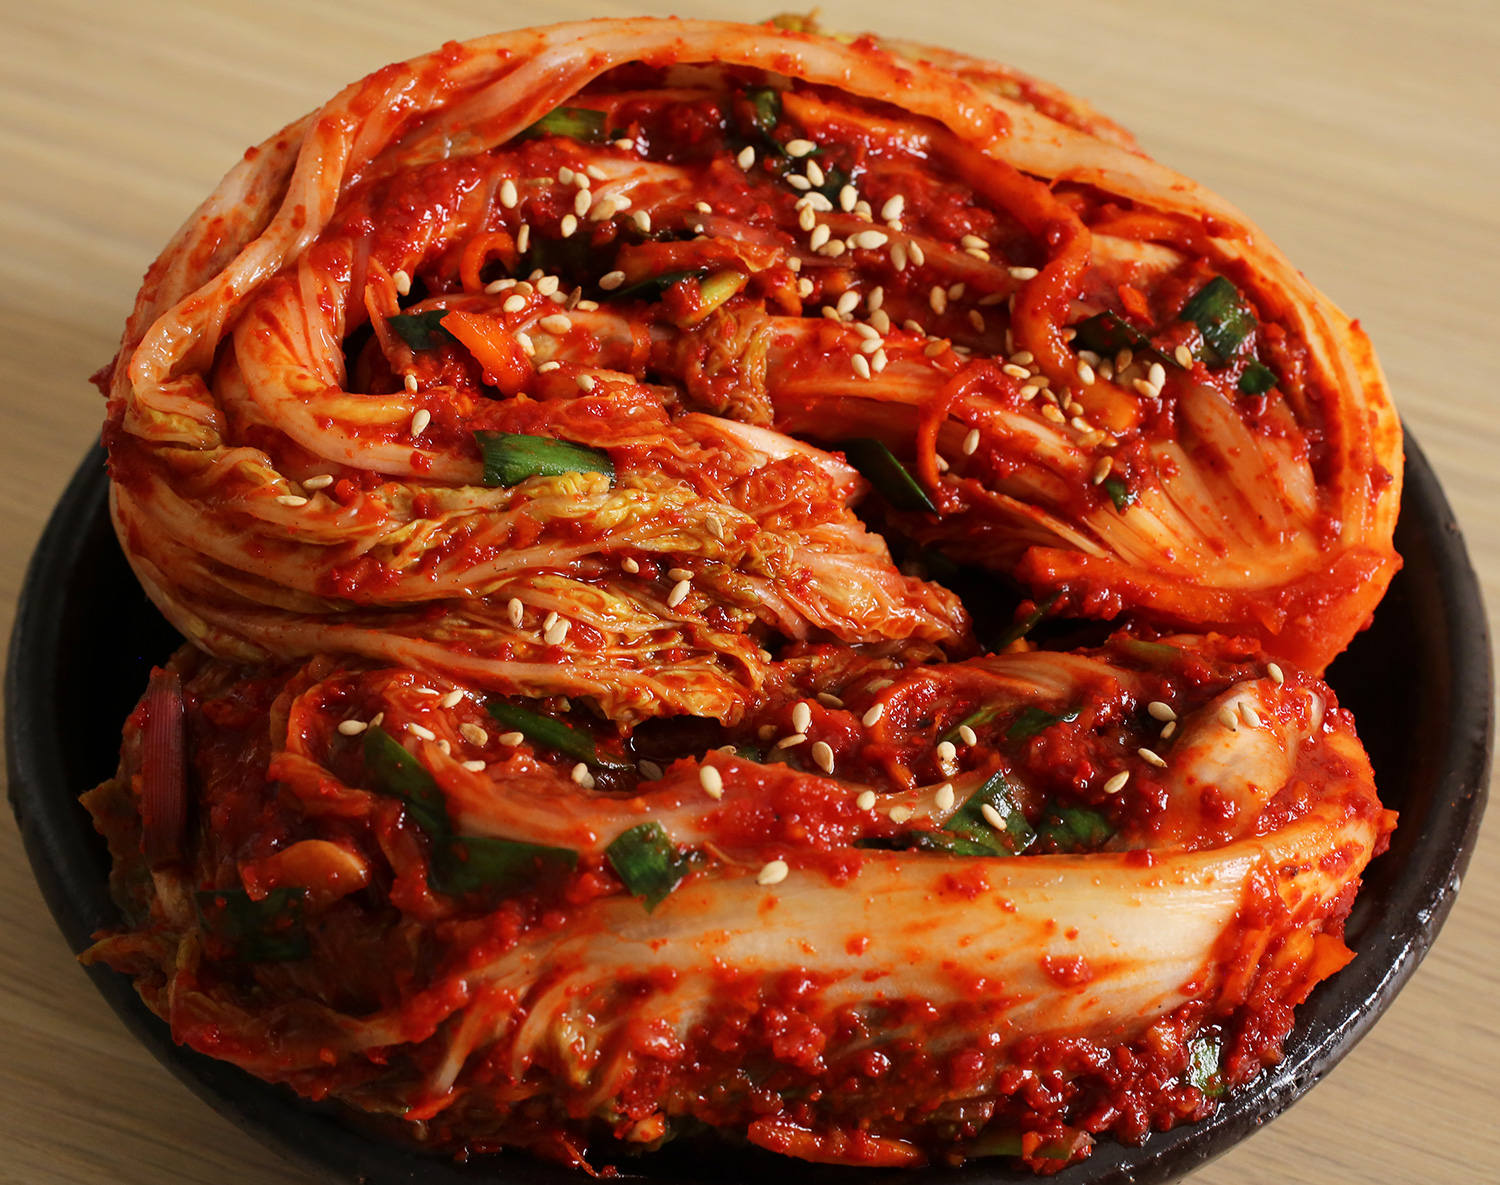 Korean kimchi recipes from Cooking Korean food with Maangchi